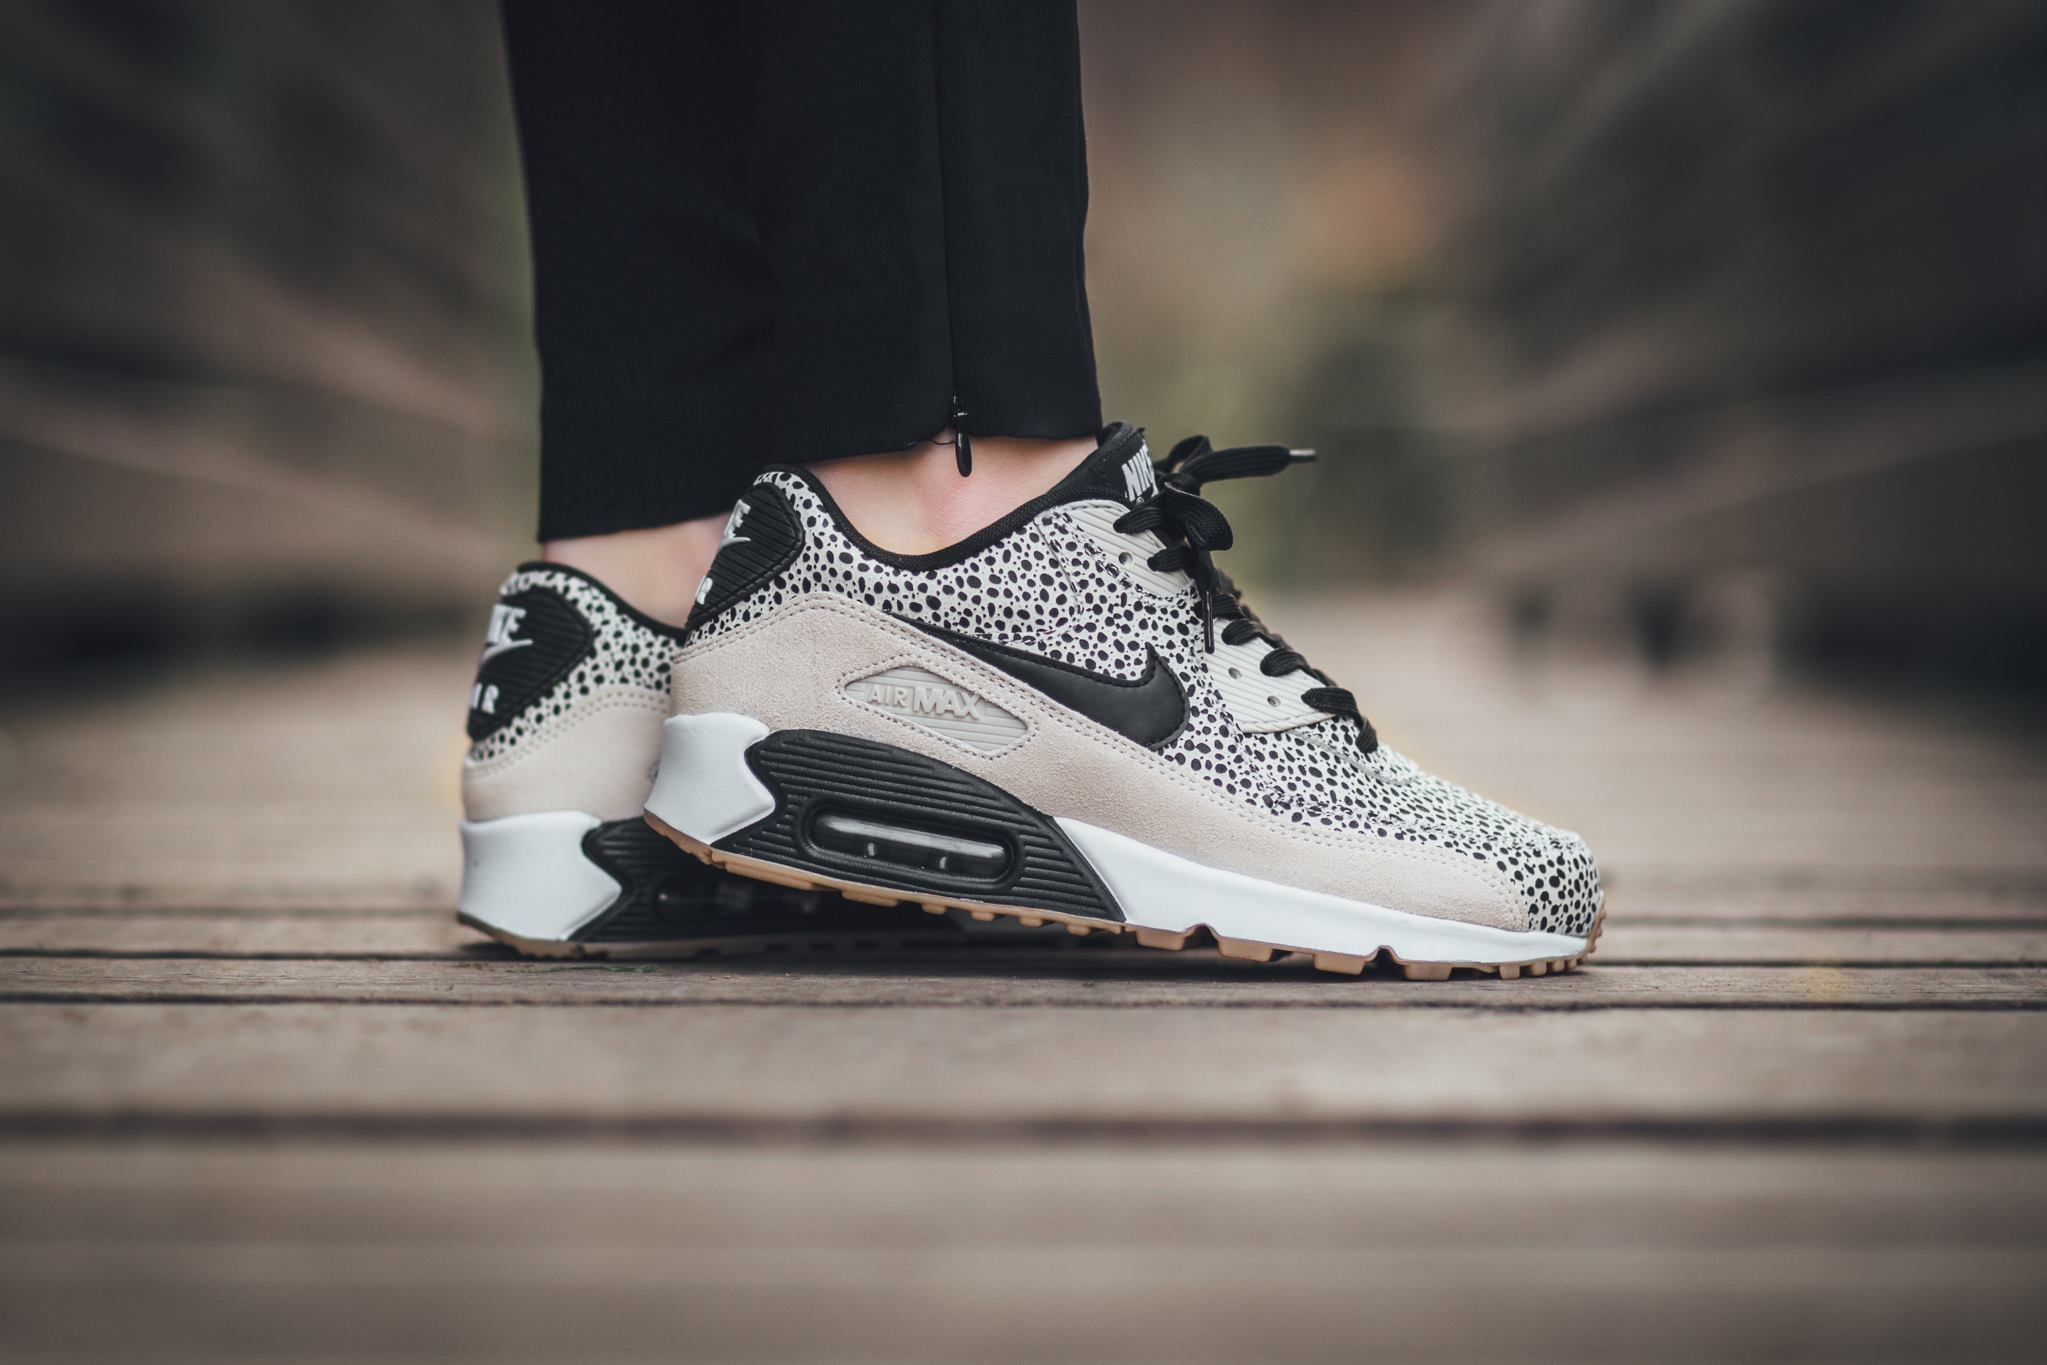 The Nike Air Max 90 Premium is rendered in a WhiteBlack